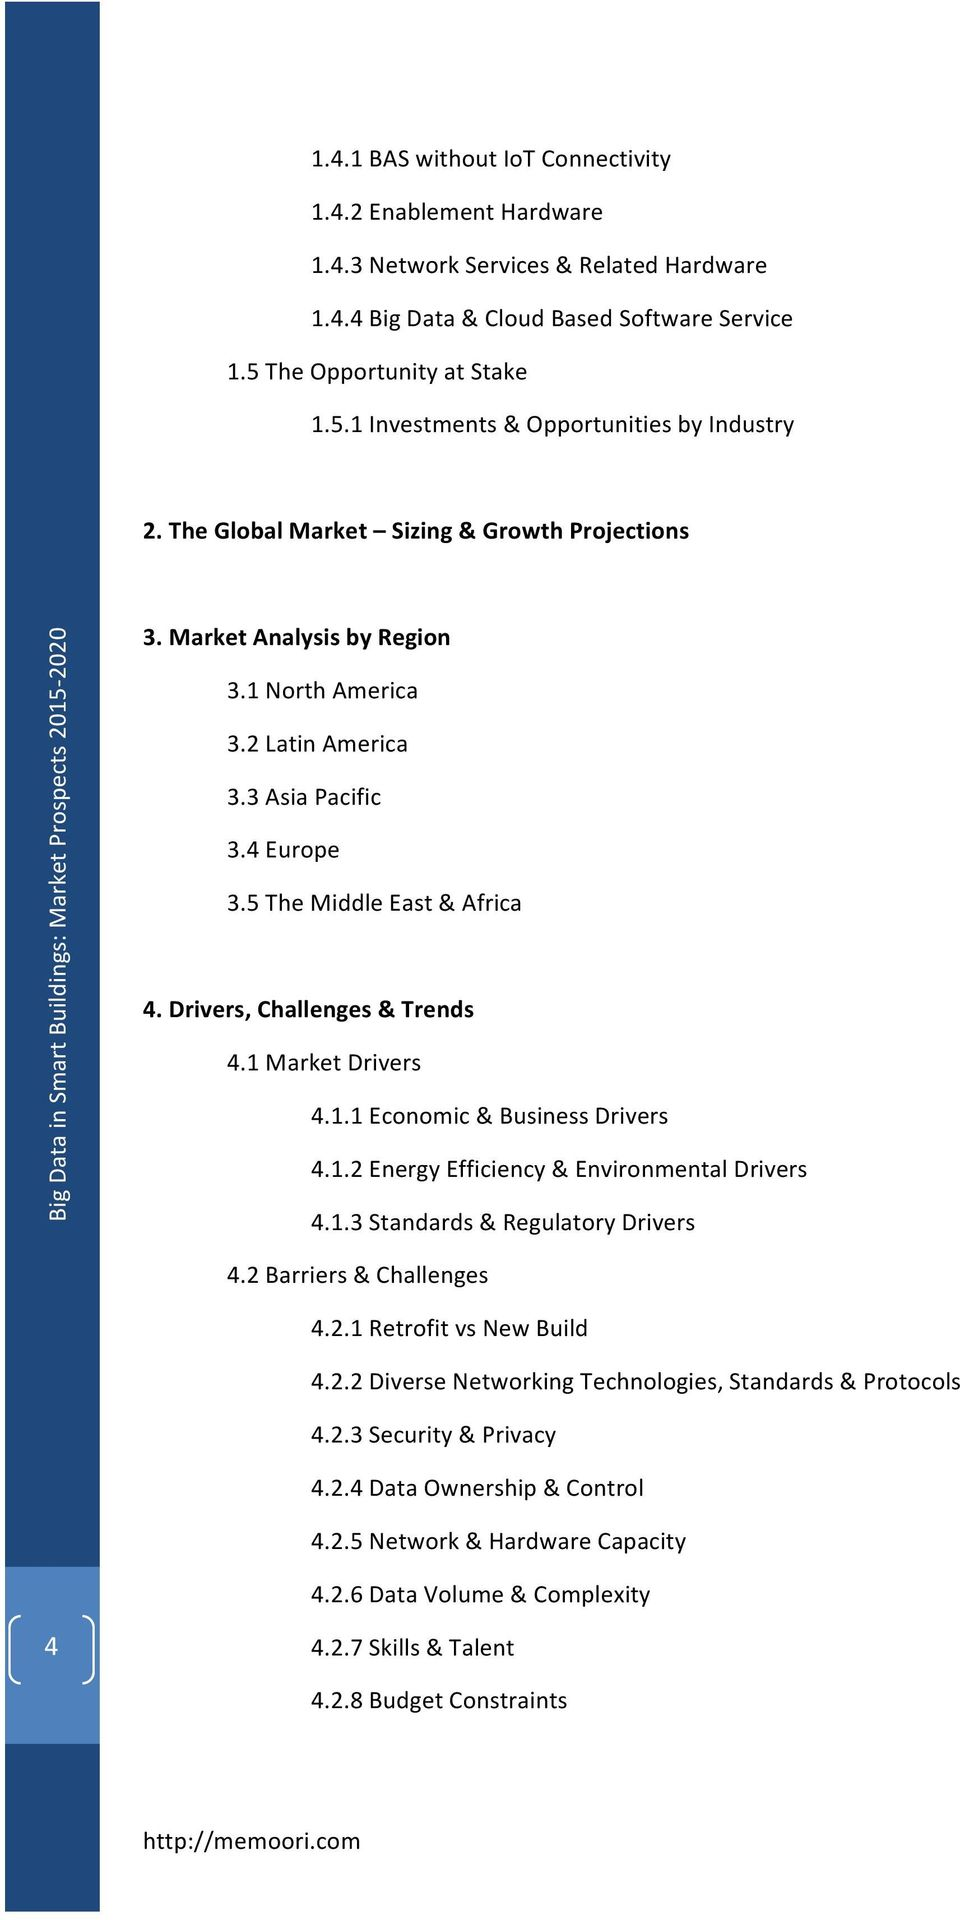 5TheMiddleEast&Africa 4.%Drivers,%Challenges%&%Trends% 4.1MarketDrivers 4.1.1Economic&BusinessDrivers 4.1.2EnergyEfficiency&EnvironmentalDrivers 4.1.3Standards&RegulatoryDrivers 4.